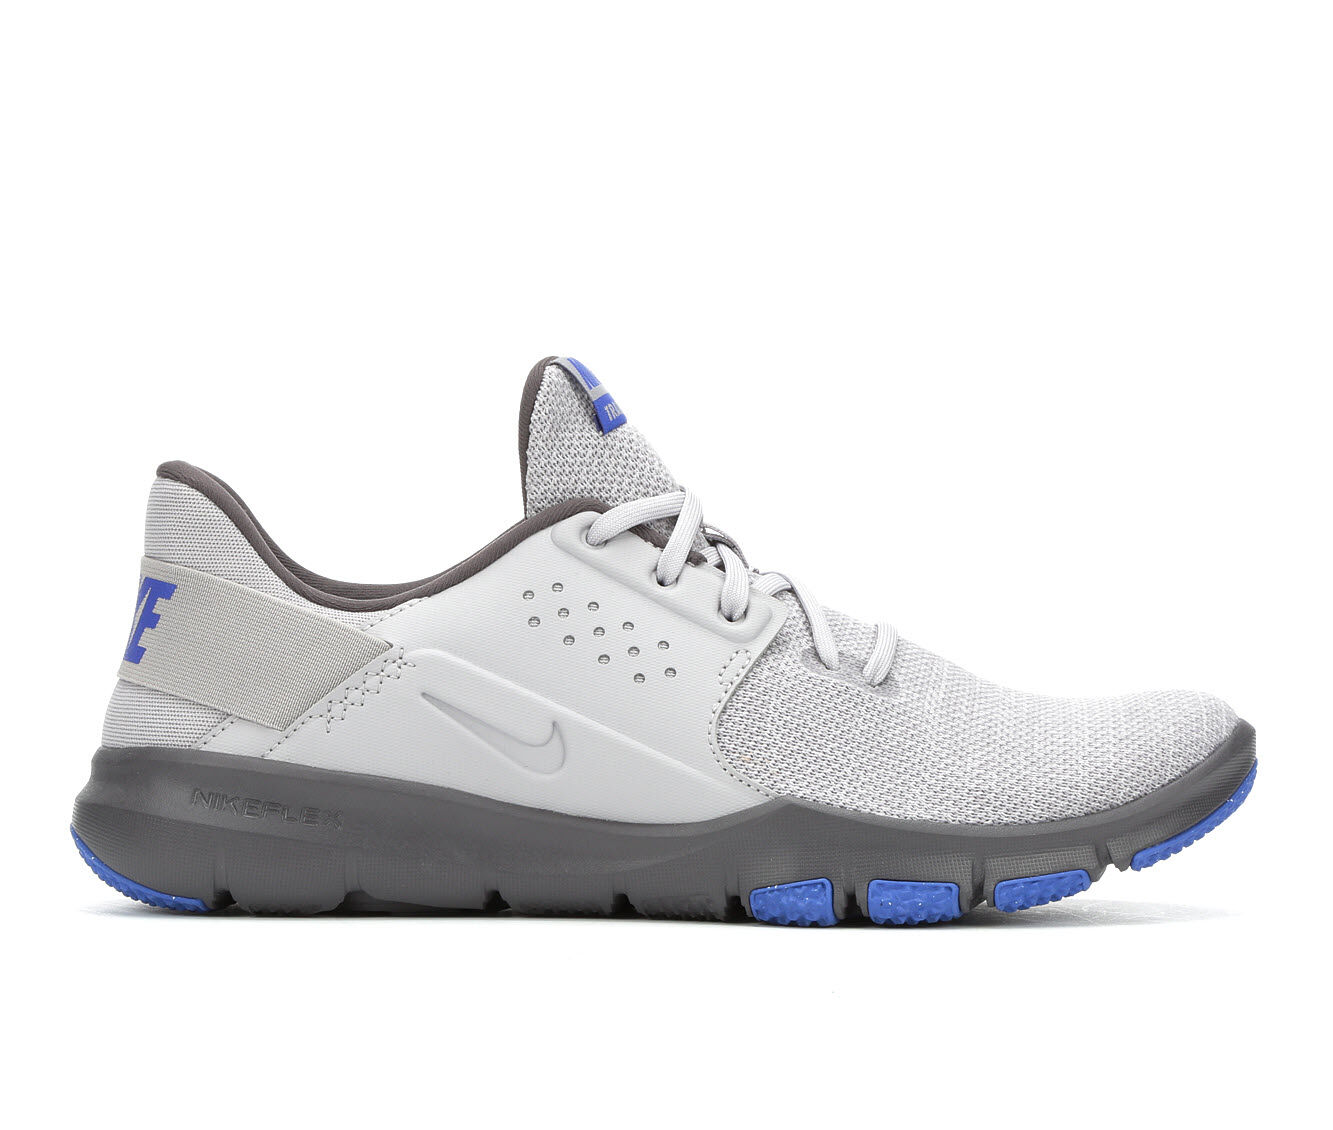 find cheapest Men's Nike Flex Control TR3 Training Shoes Gy/Dk Gy/Bl 003